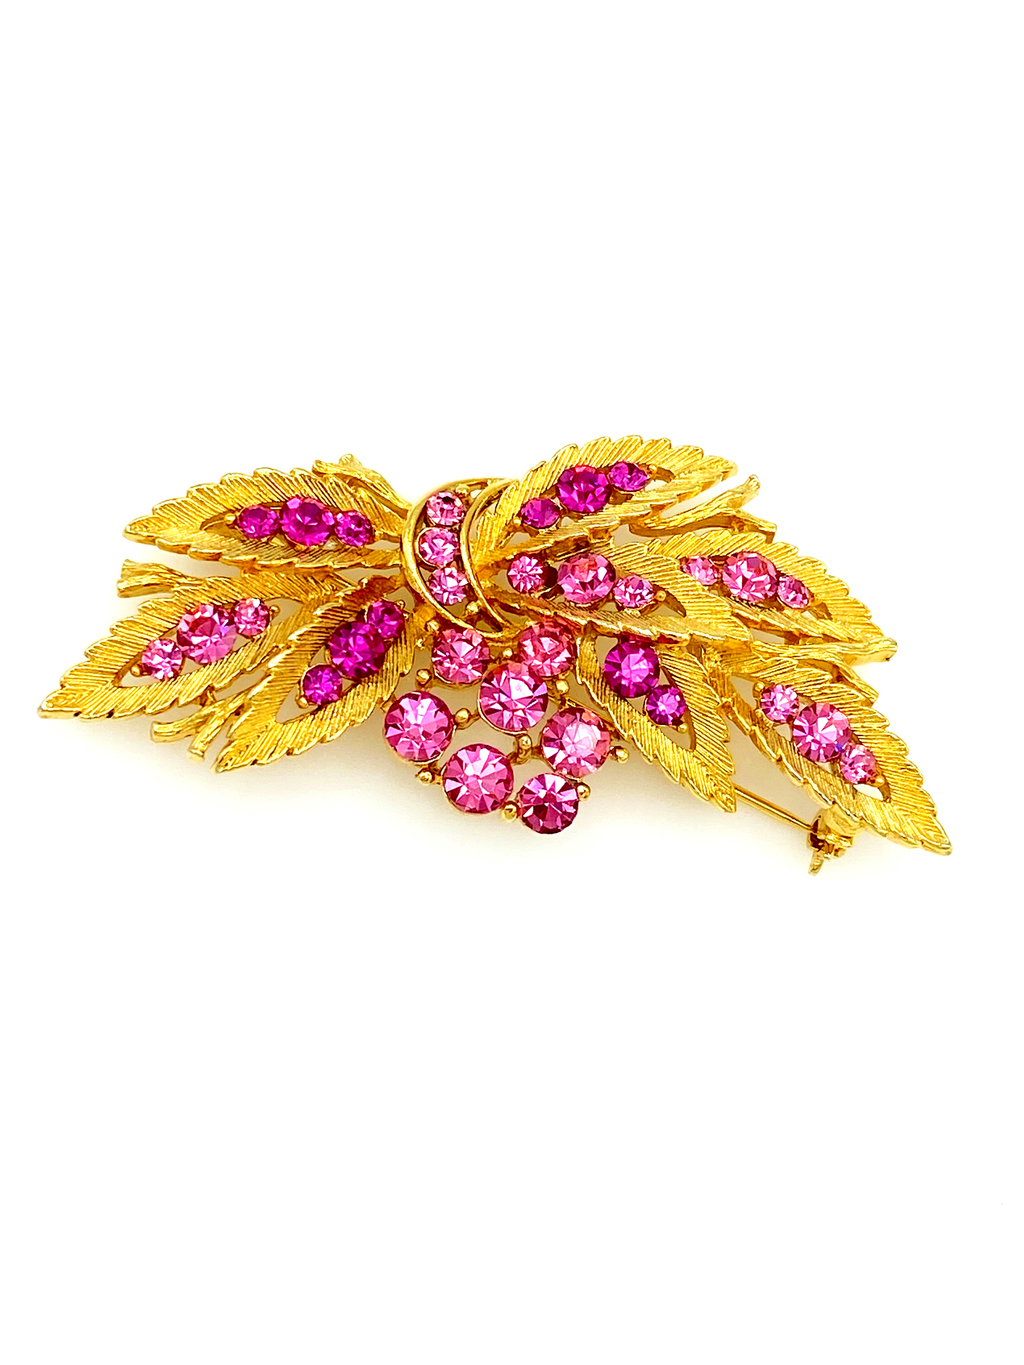 Gold Floral Pink Rhinestone Linser Vintage Brooch-Sustainable Fashion with Vintage Style-Trending Designer Fashion-24 Wishes